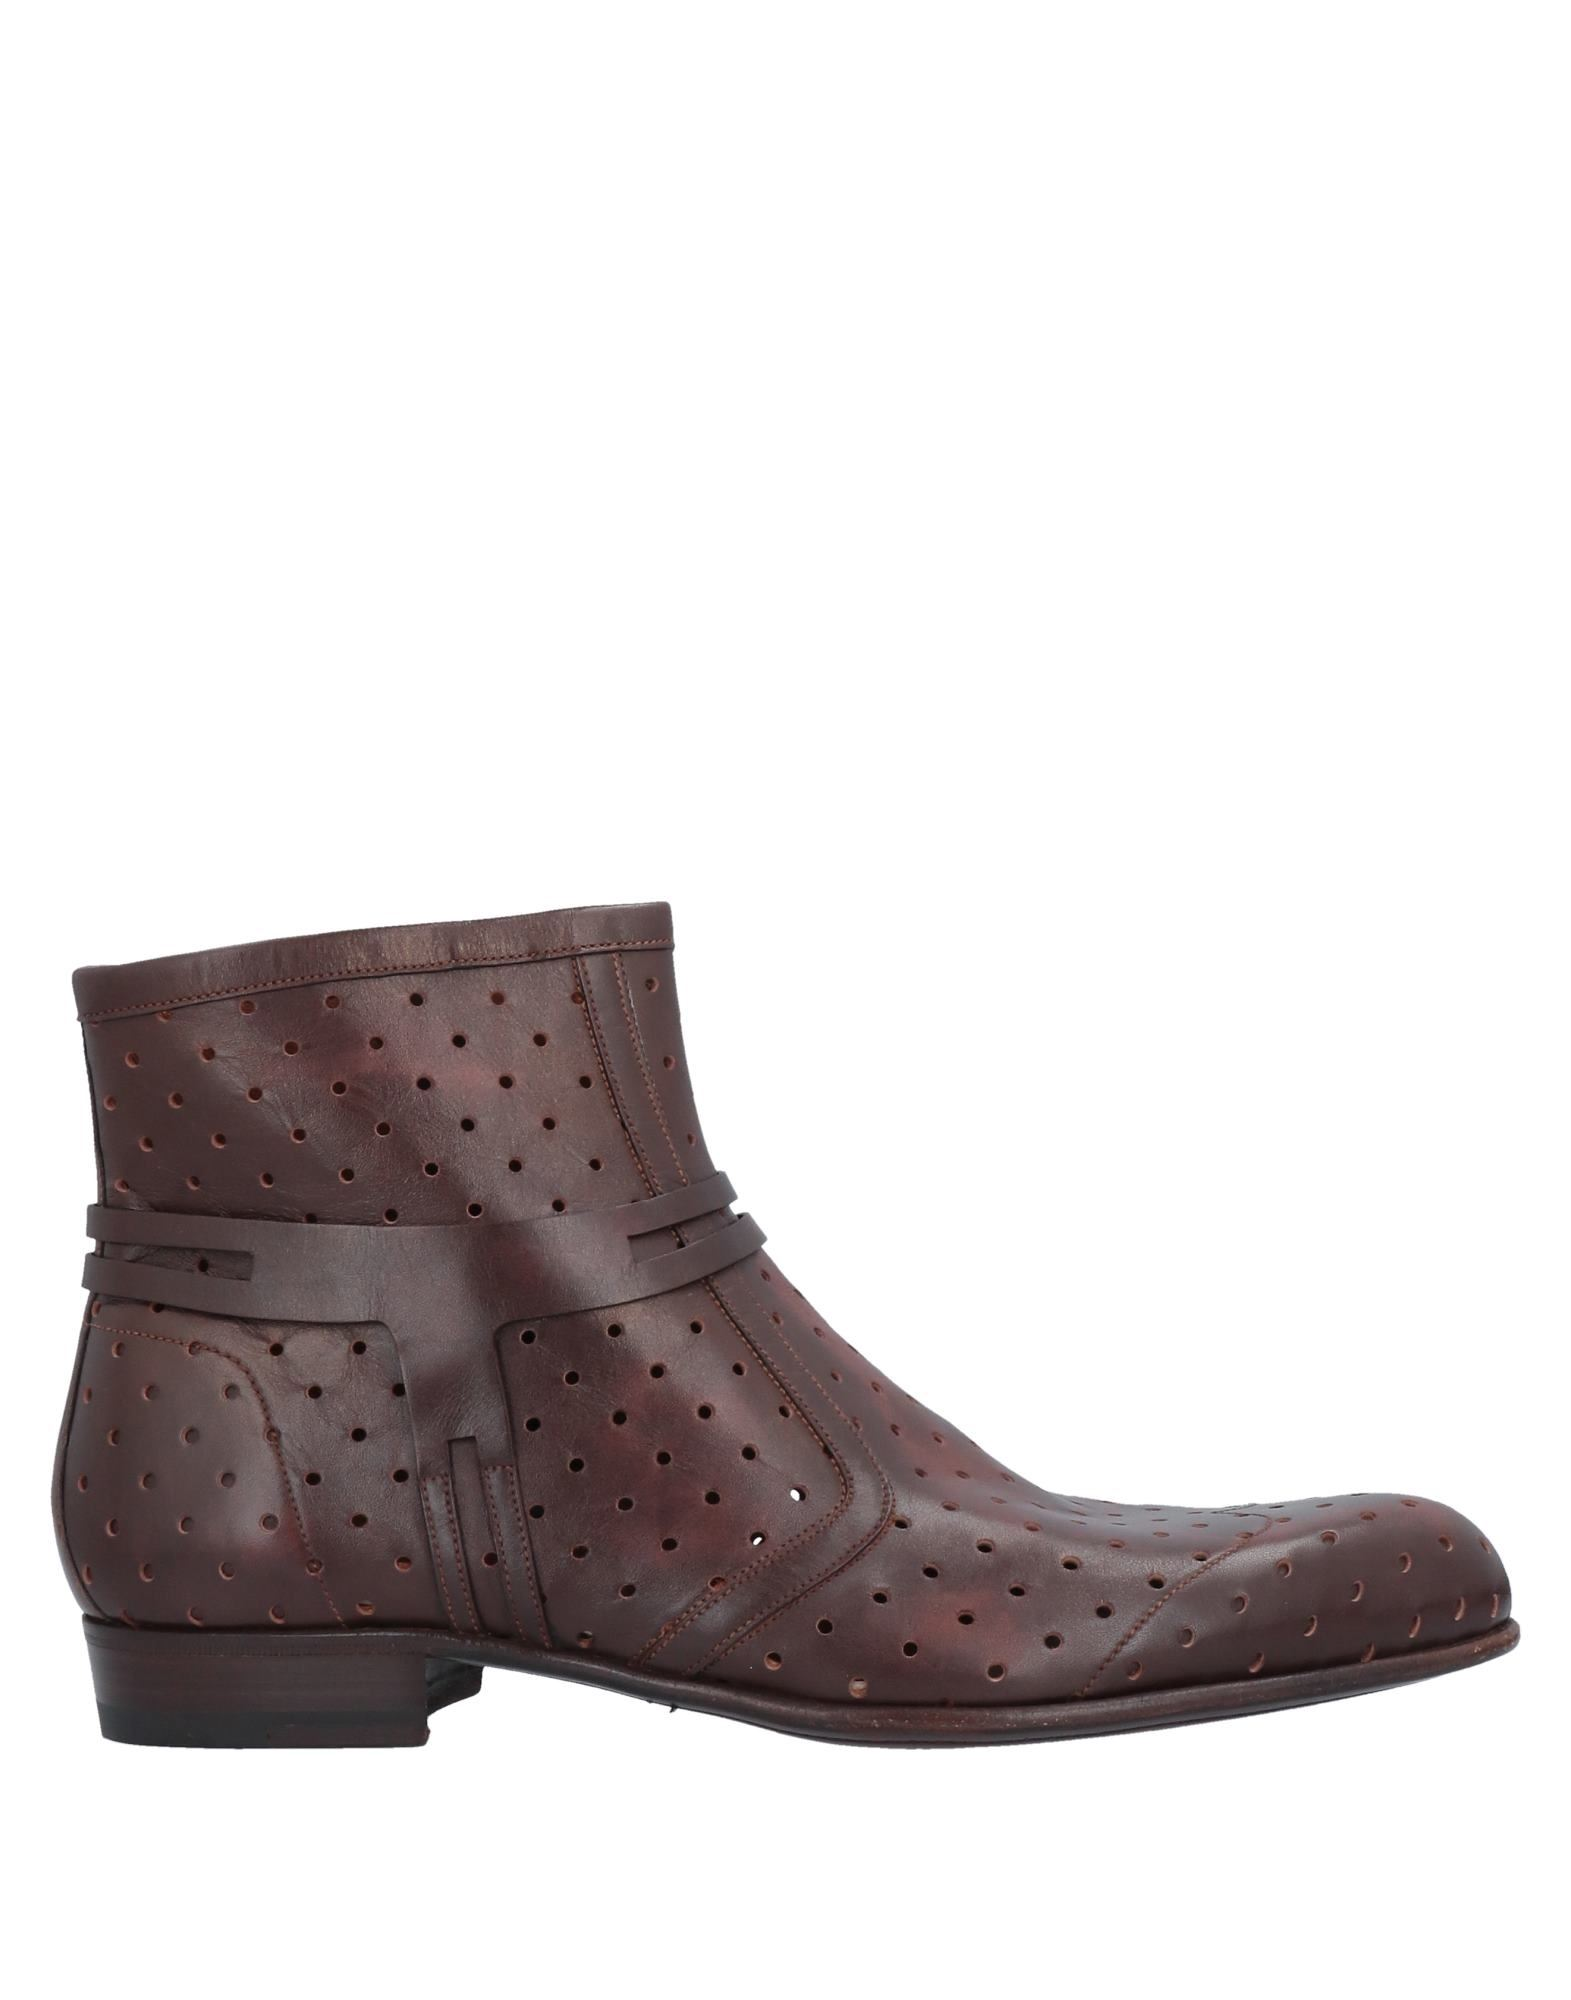 A.testoni Ankle Boots In Dark Brown